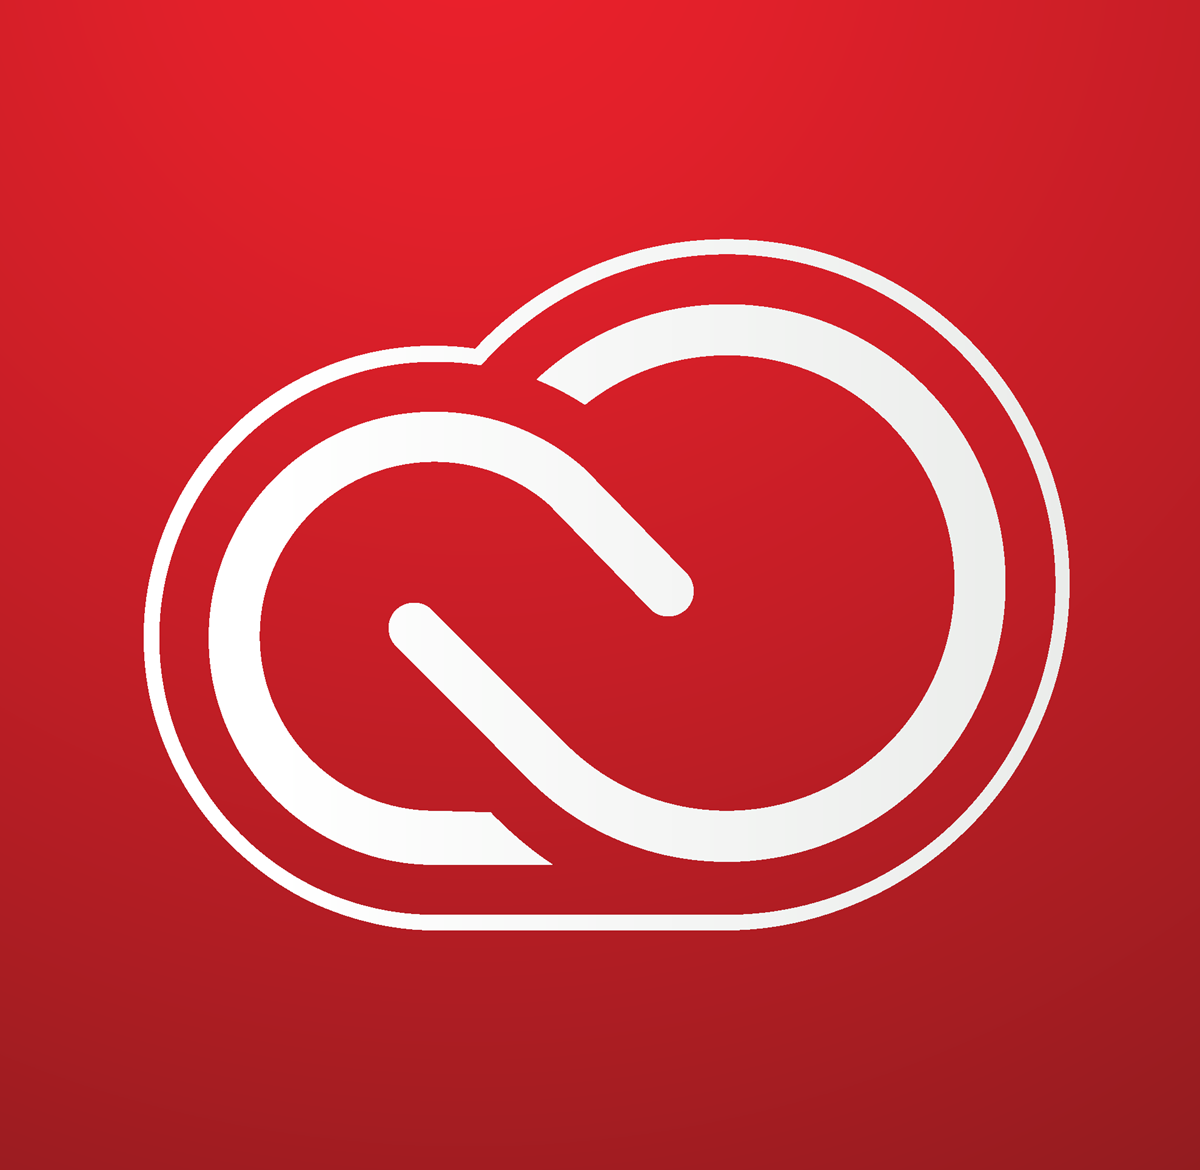 Adobe Creative Cloud Logo. Creative Cloud is a collection of 20+ desktop and mobile apps and services for photography, design, video, web, UX, and more.